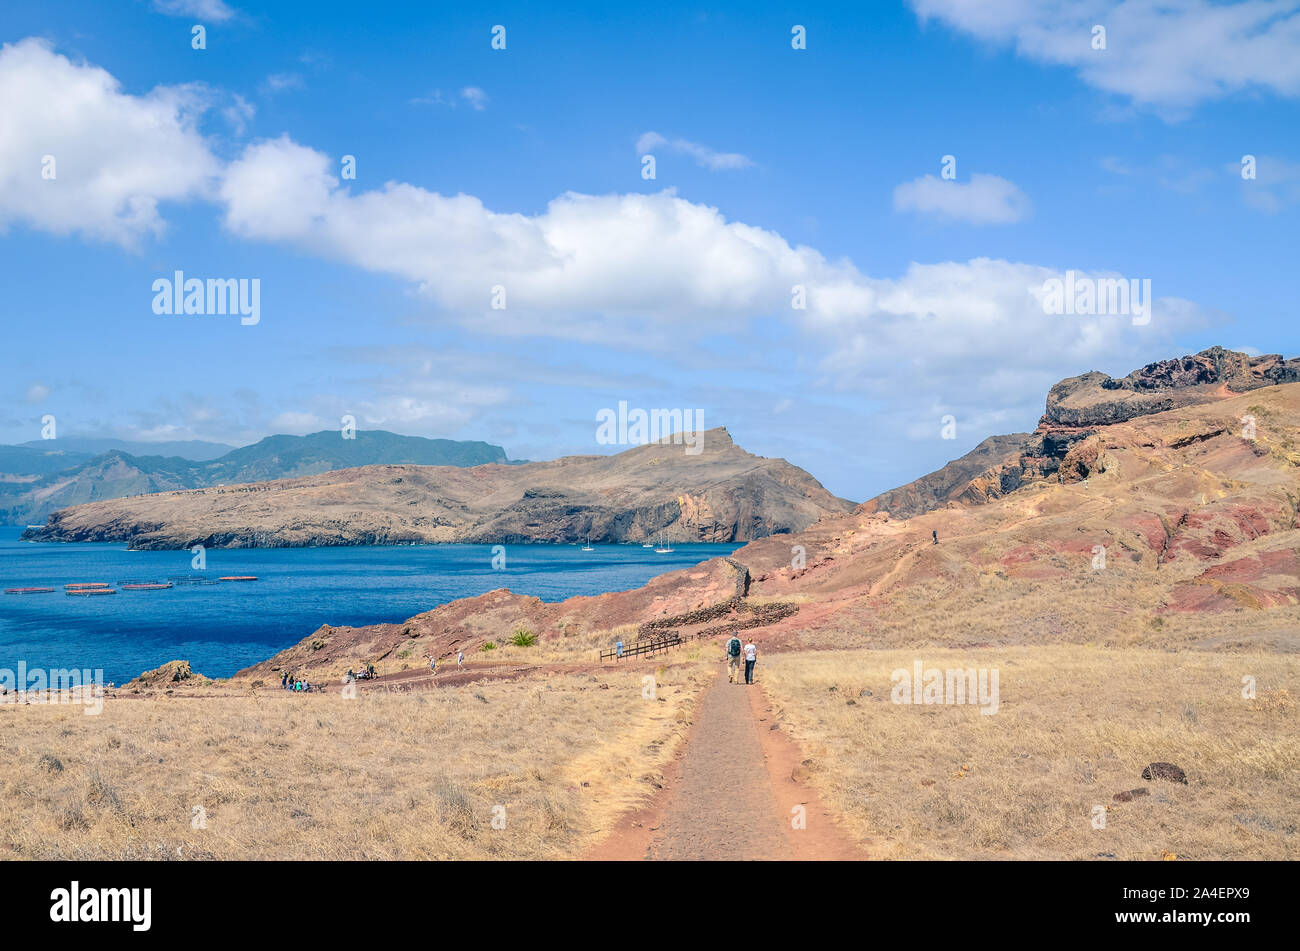 Tourists hiking in Ponta de Sao Lourenco in Madeira, Portugal. The easternmost point of the Portuguese island. Volcanic landscape. Hilly, rocky terrain. Volcanic soil. Hikers on a path. Stock Photo